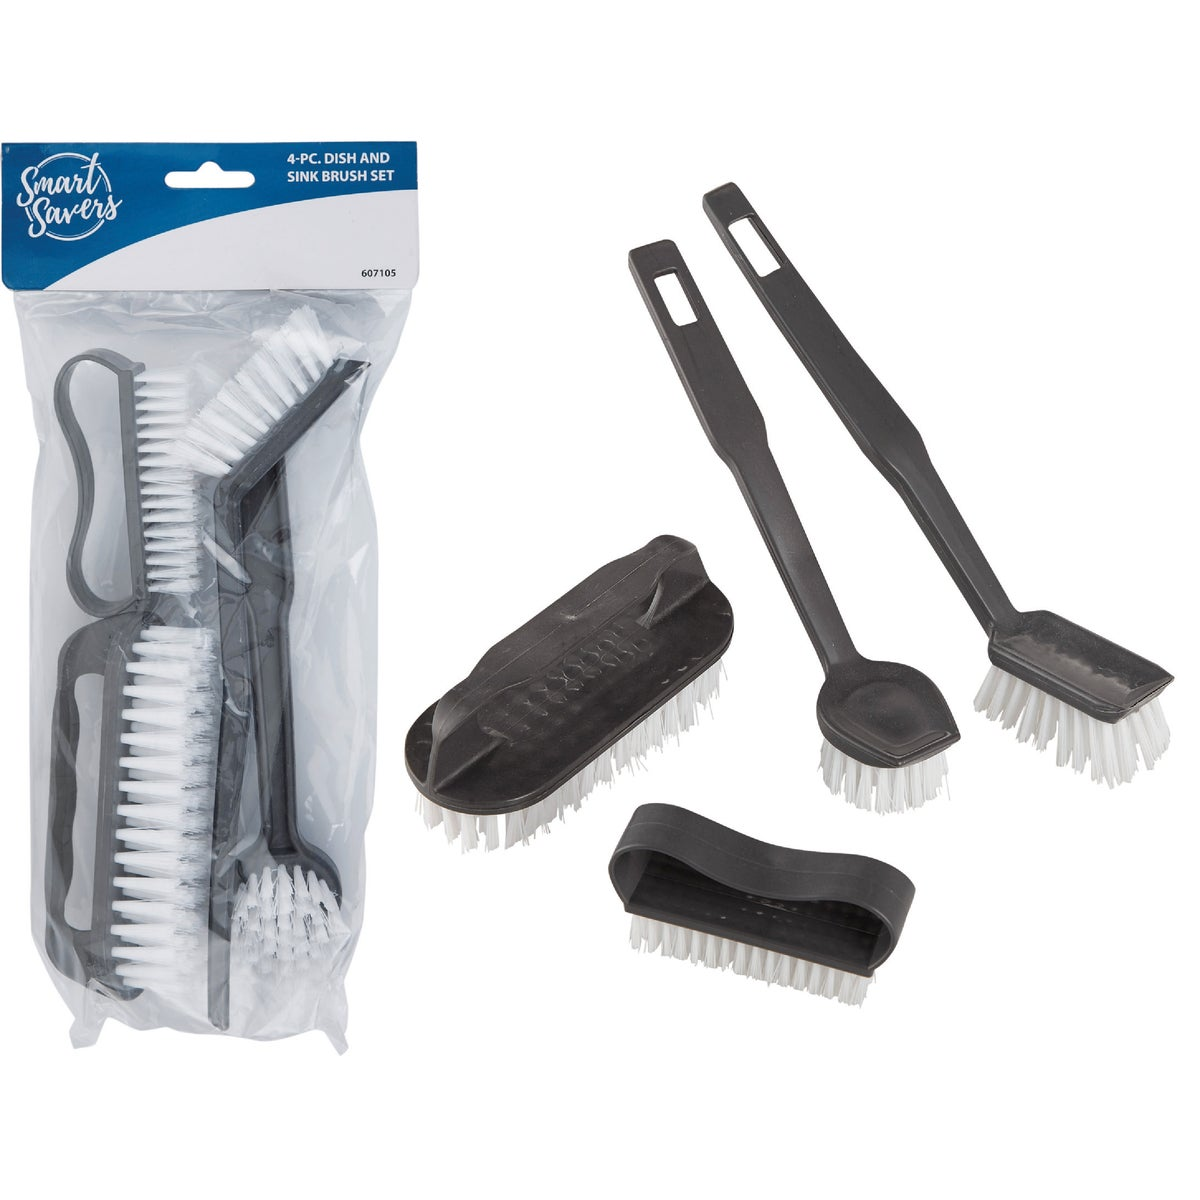 DISH & SINK SCRUB BRUSH - HV381 by Do it Best